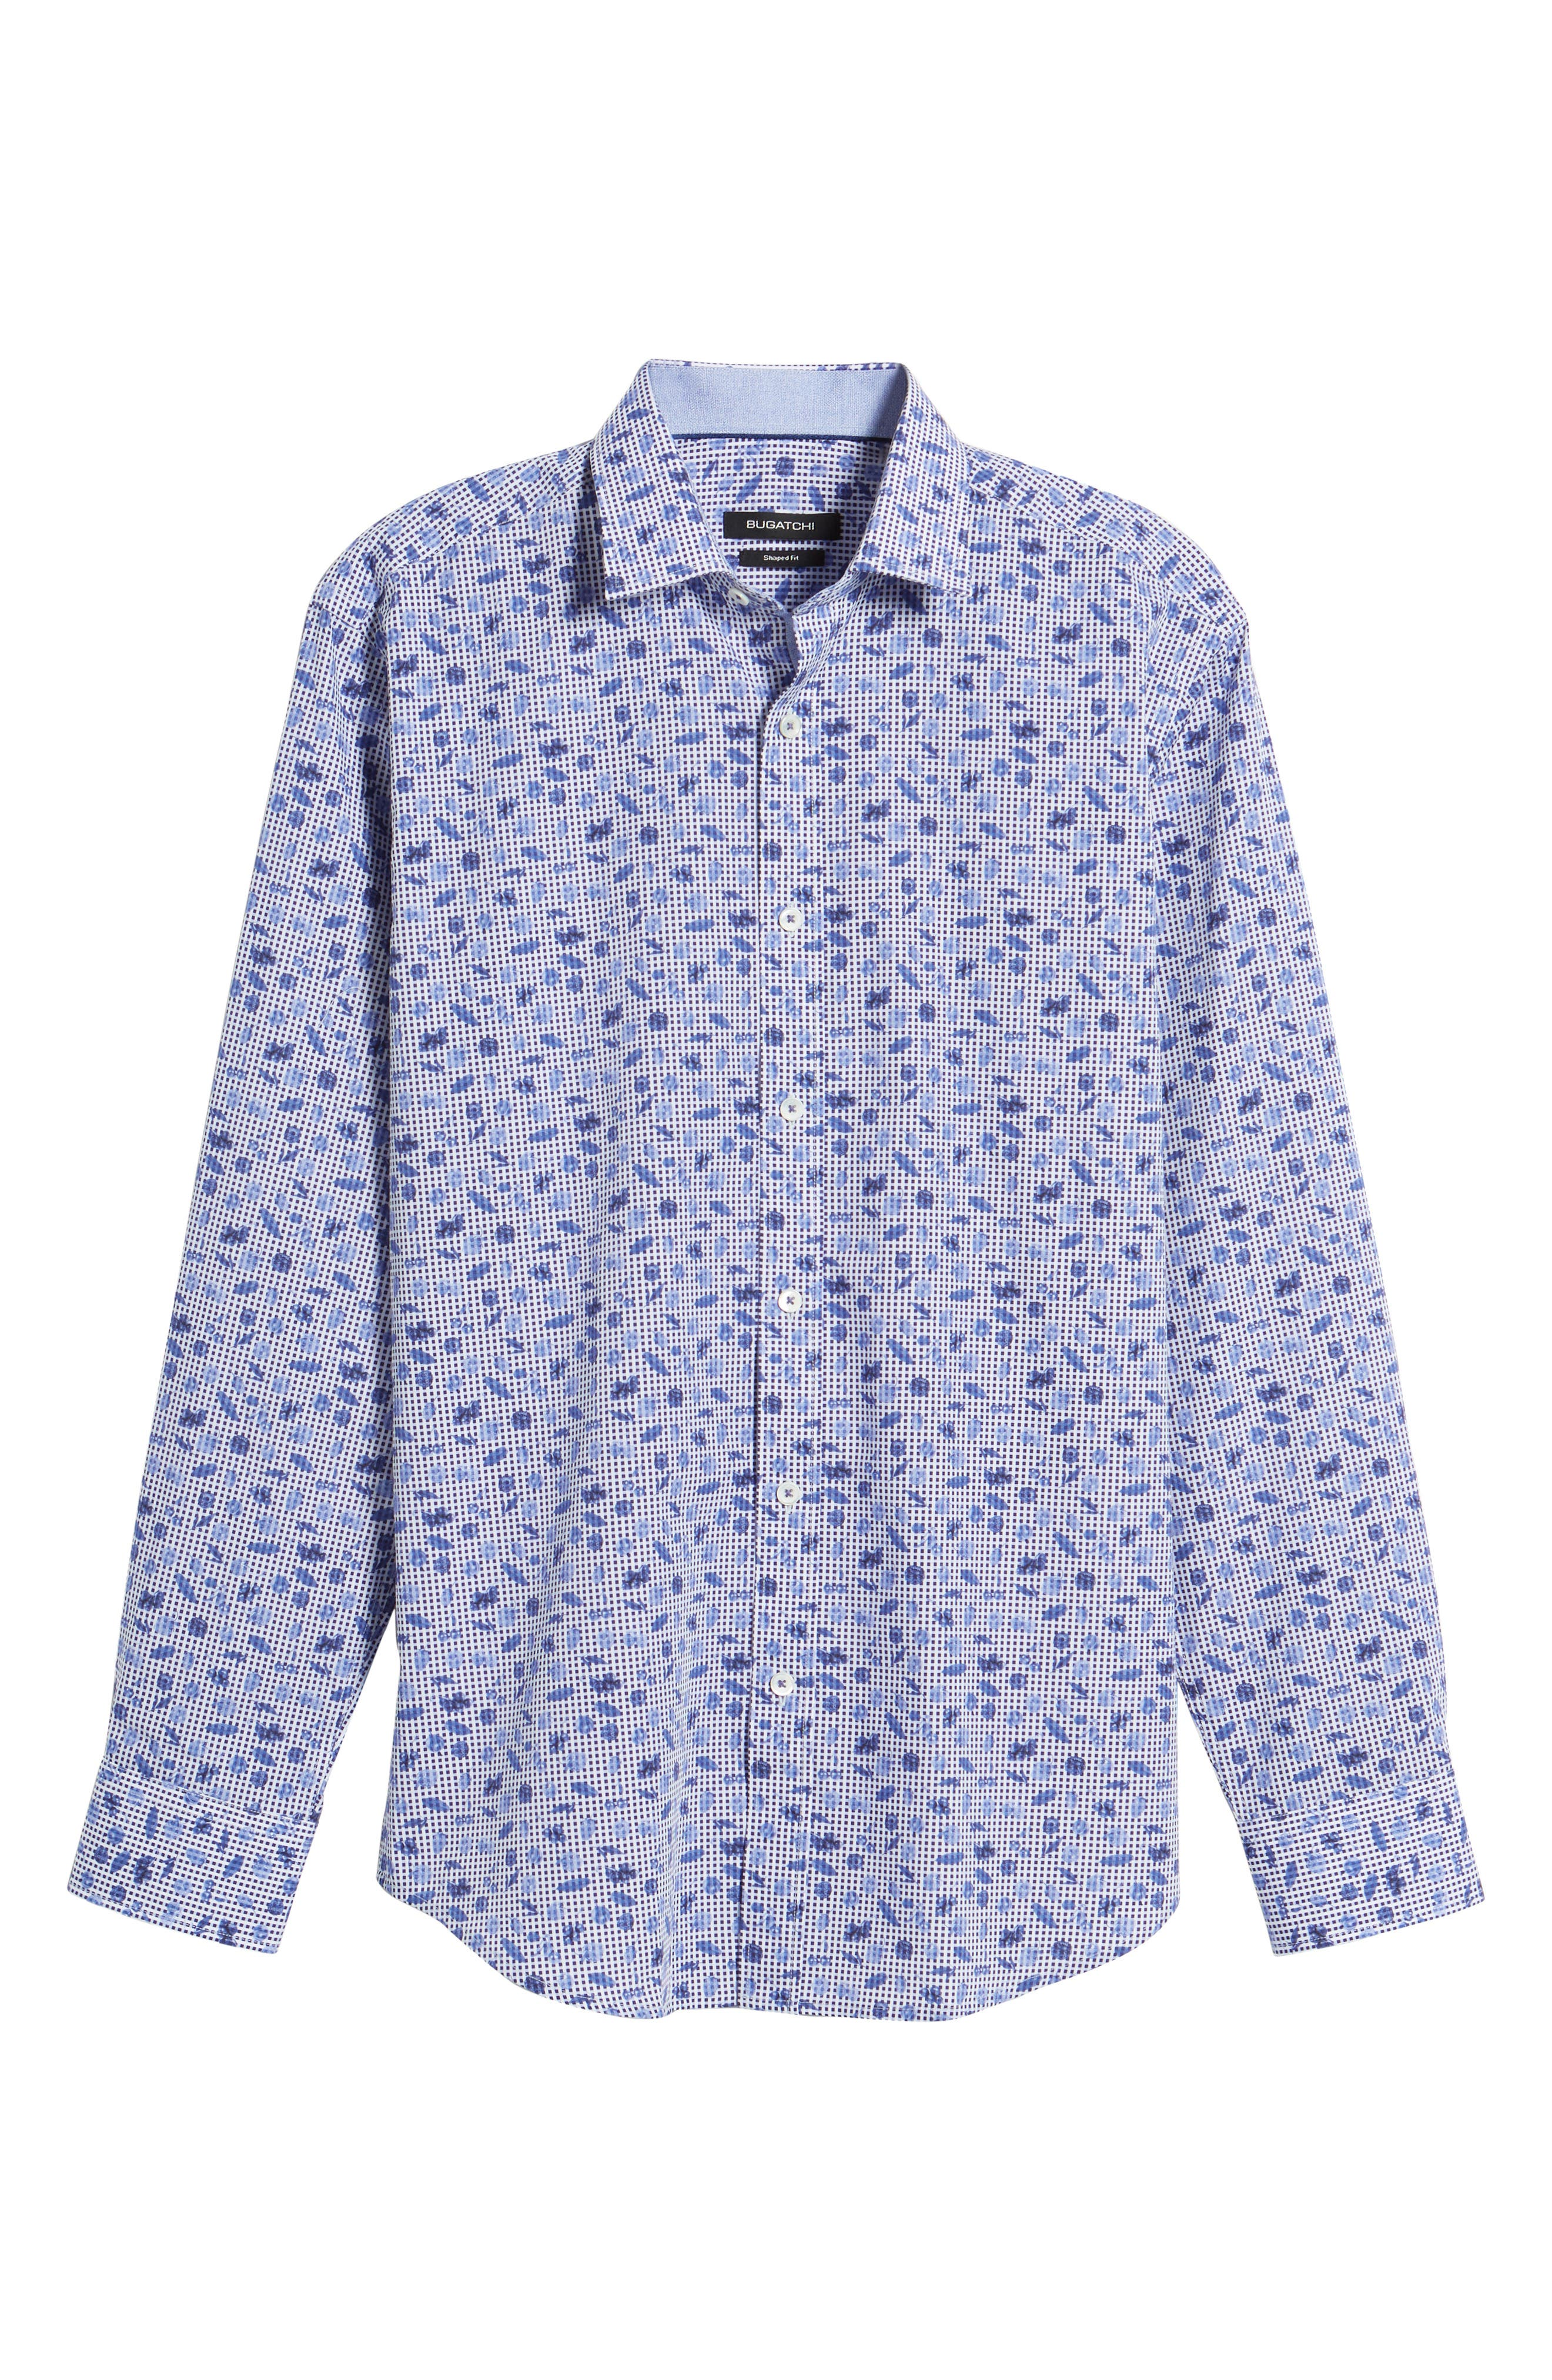 Shaped Fit Print Sport Shirt,                             Alternate thumbnail 6, color,                             Navy